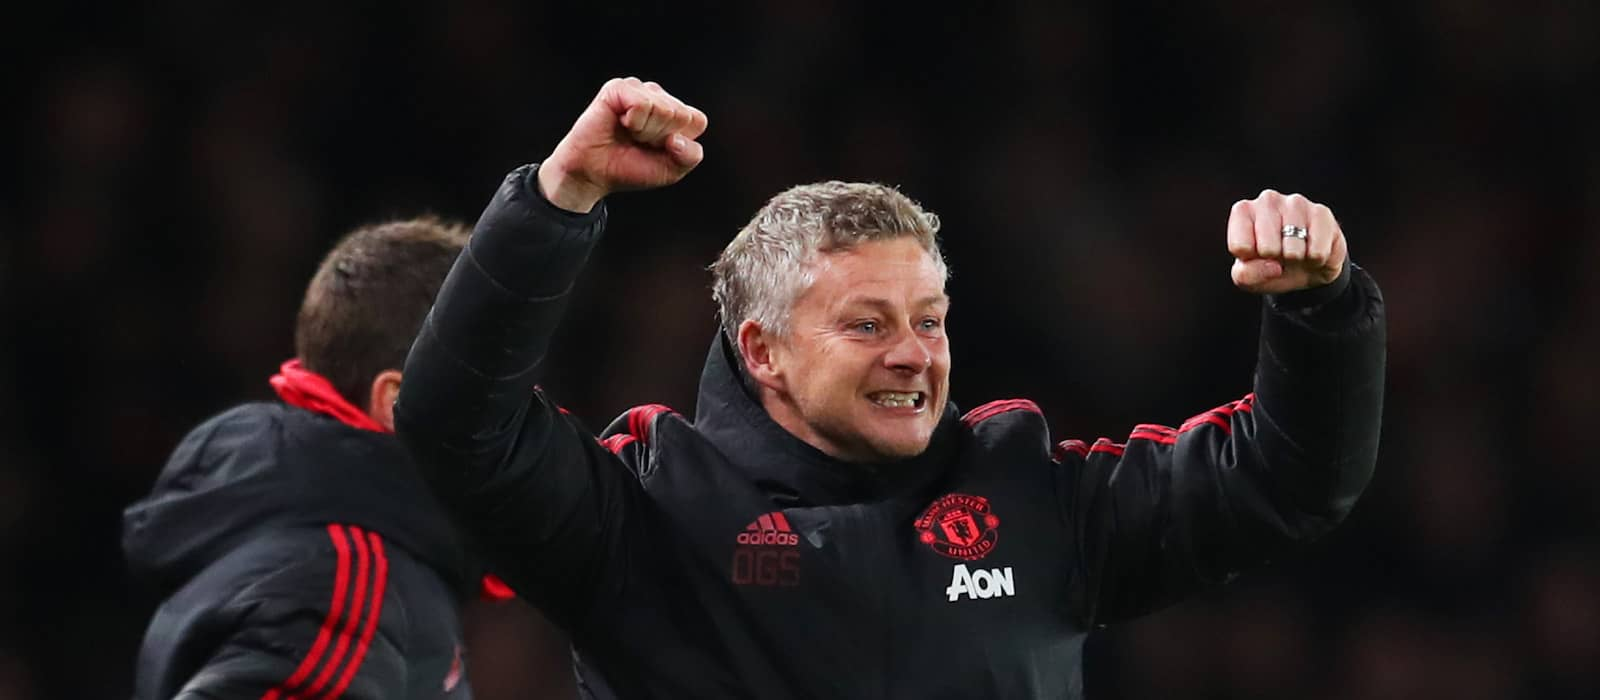 Manchester United fans delighted as Ole Gunnar Solskjaer wins Premier League 'Manager of the Month' award